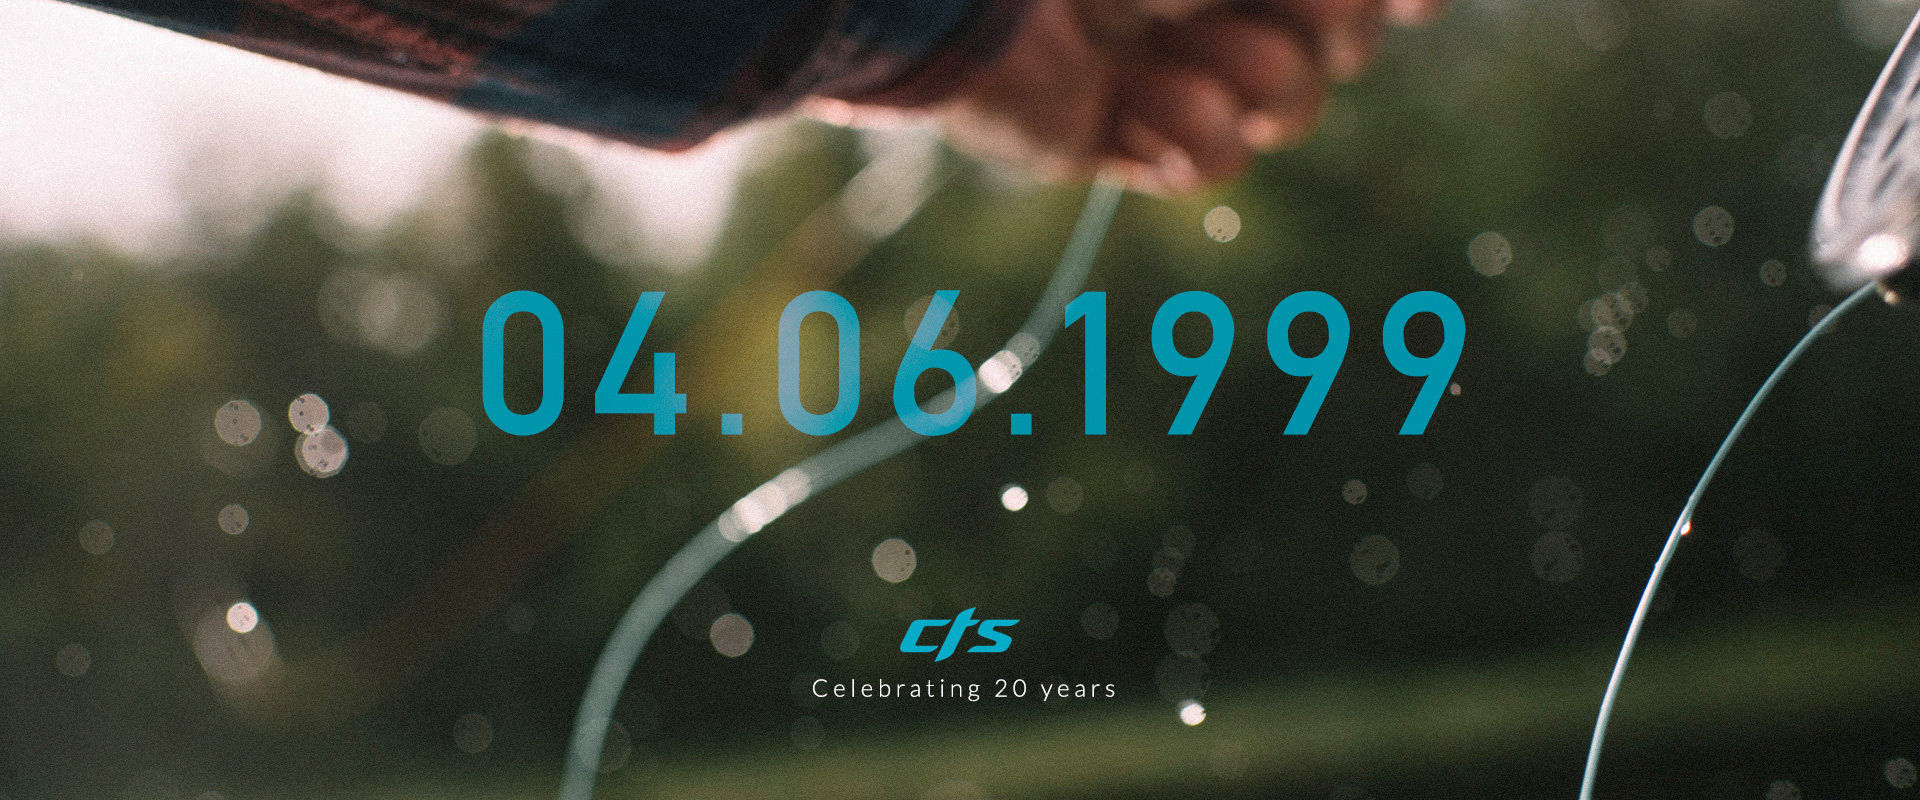 CTS Celebrates 20 Years